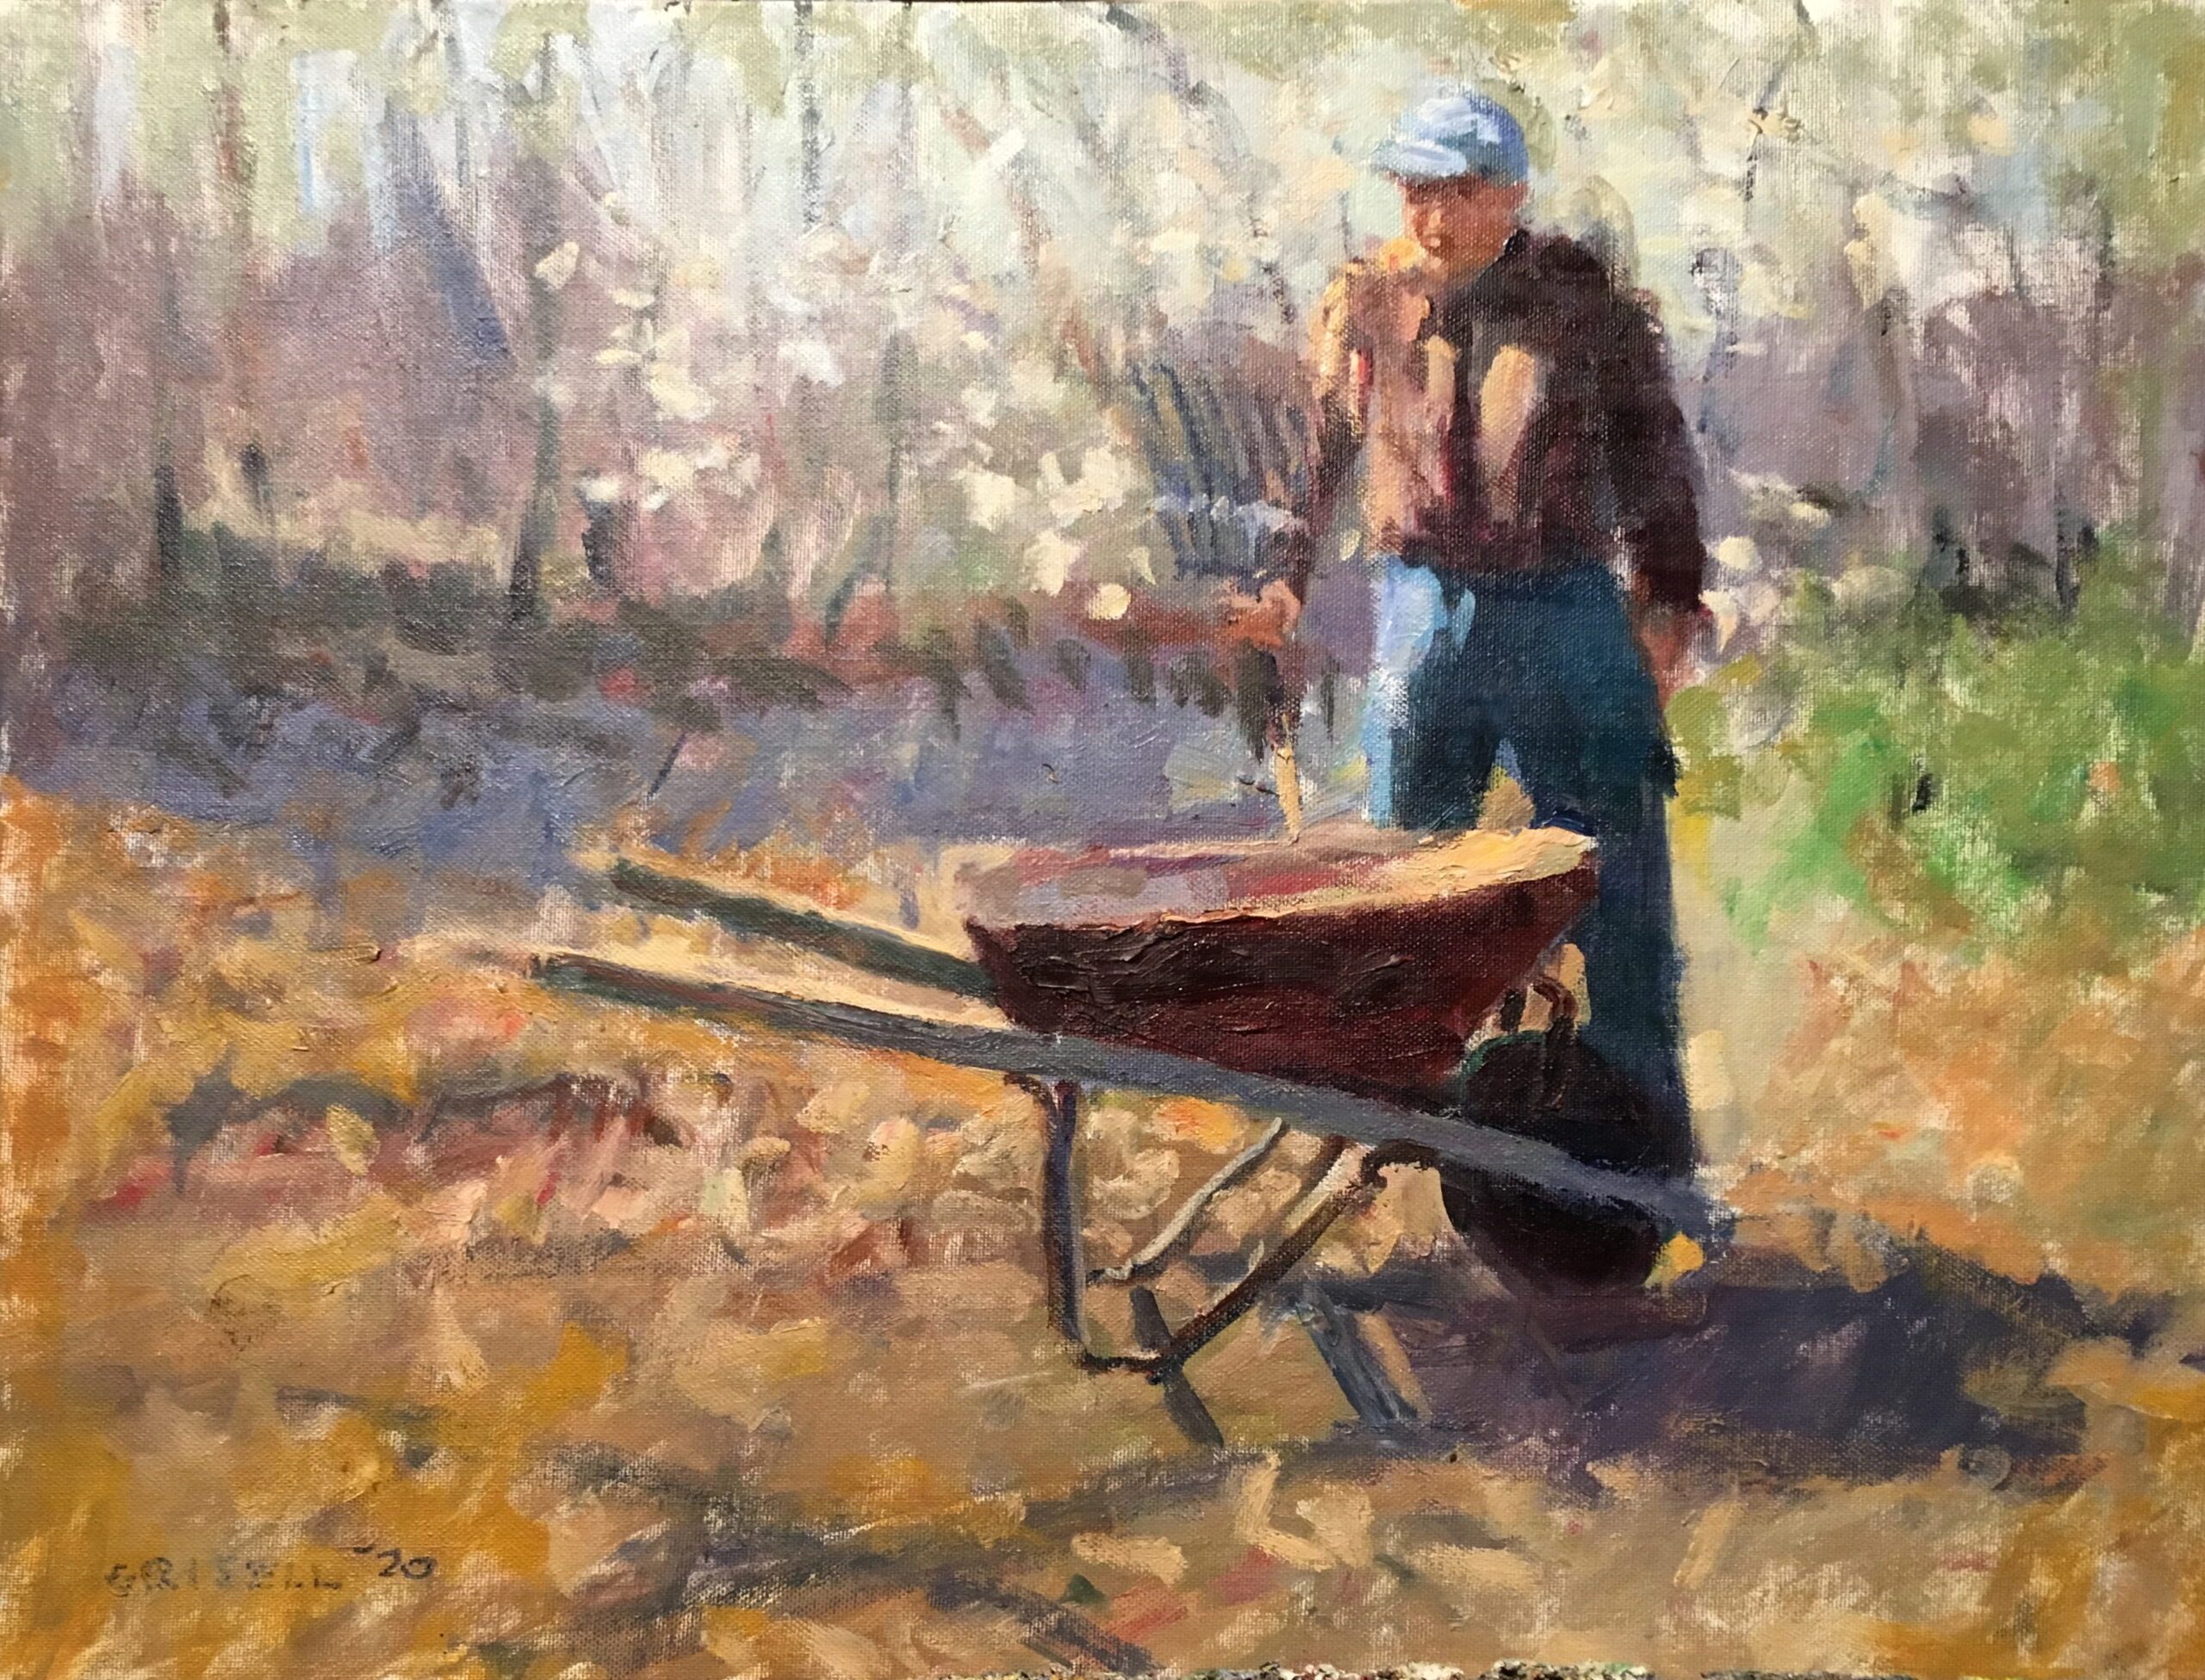 Yardwork, Oil on Canvas on Panel, 16 x 20 Inches, by Susan Grisell, $550